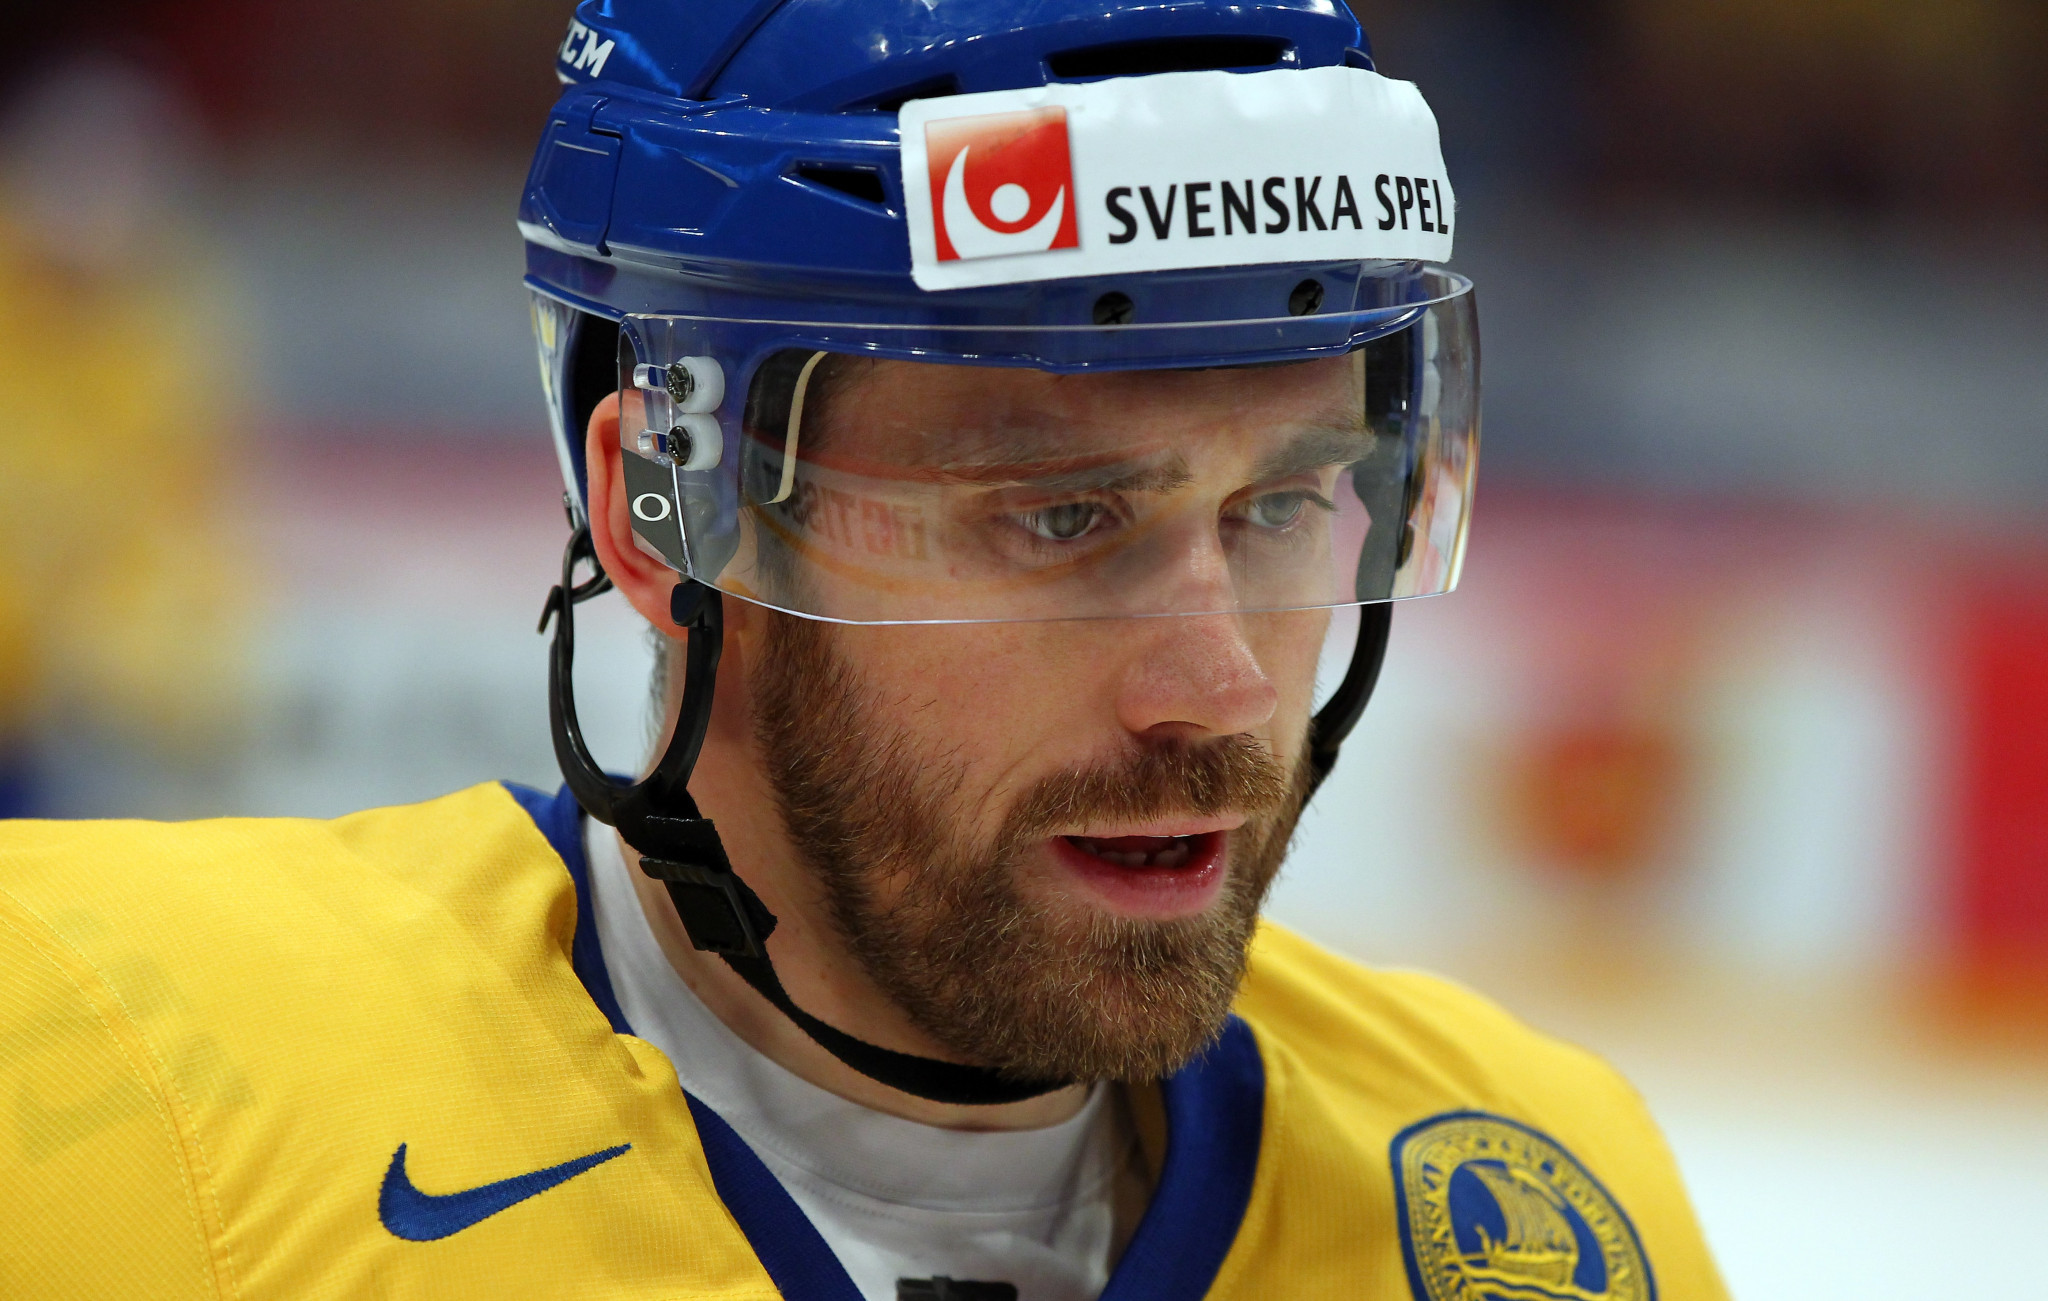 Sweden's Zetterberg retires from ice hockey due to back injury